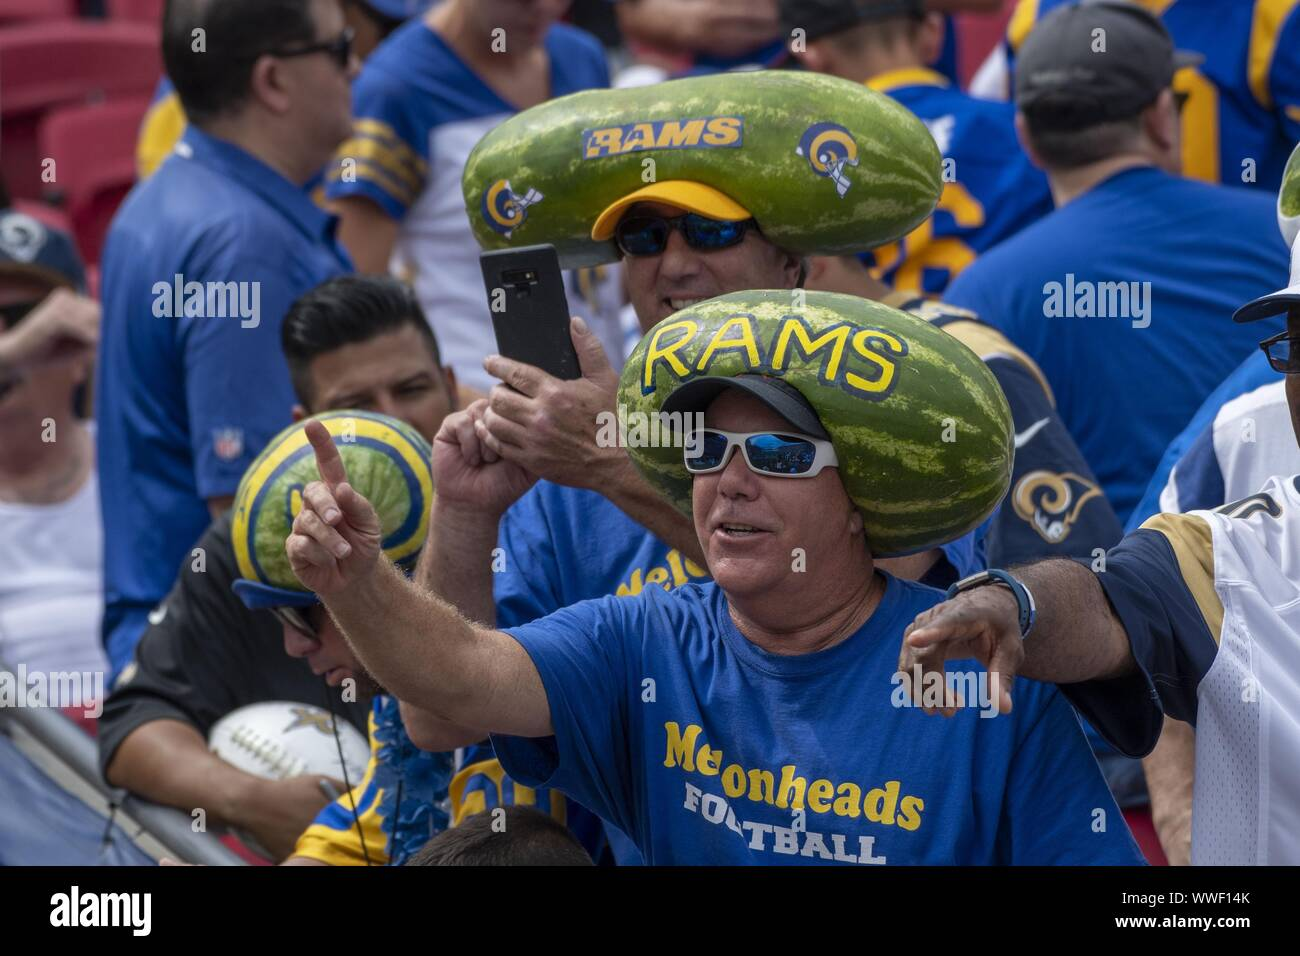 Los Angeles, United States. 15th Sep, 2019. Watermelon heads were in full display at the Los Angeles Memorial Coliseum in Los Angeles, California on Sunday, September 15, 2019. The Rams defeated the Saints 27 - 9 to open their home season. Photo by Michael Goulding/UPI Credit: UPI/Alamy Live News Stock Photo